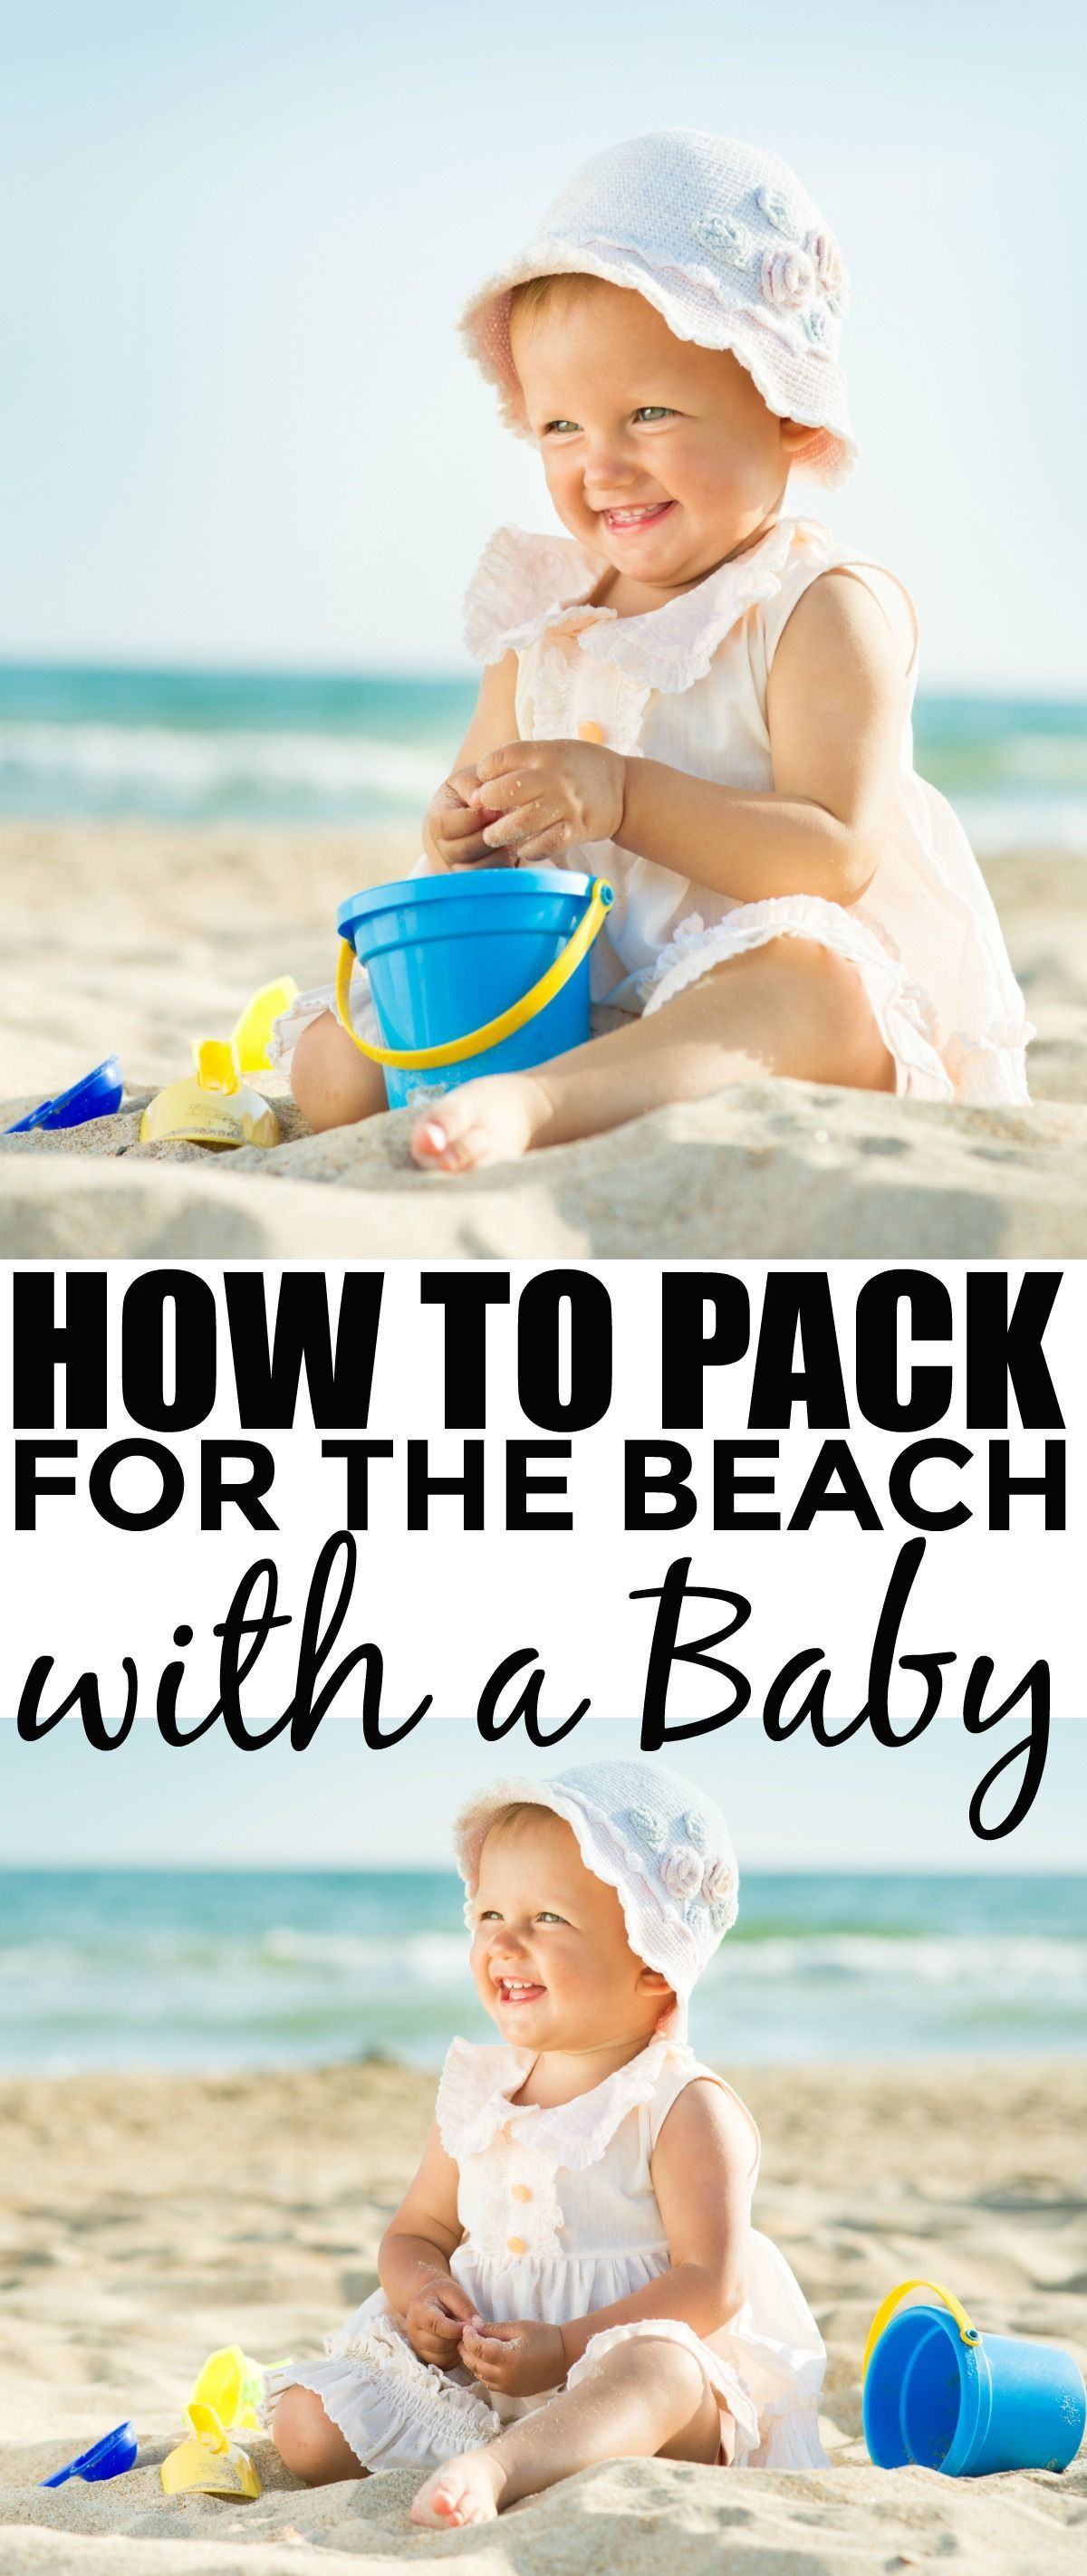 How to Pack for the Beach with a Baby - Family Travel tips for infants and new parents. Summer fun without the stress! #style #shopping #styles #outfit #pretty #girl #girls #beauty #beautiful #me #cute #stylish #photooftheday #swag #dress #shoes #diy #design #fashion #Travel